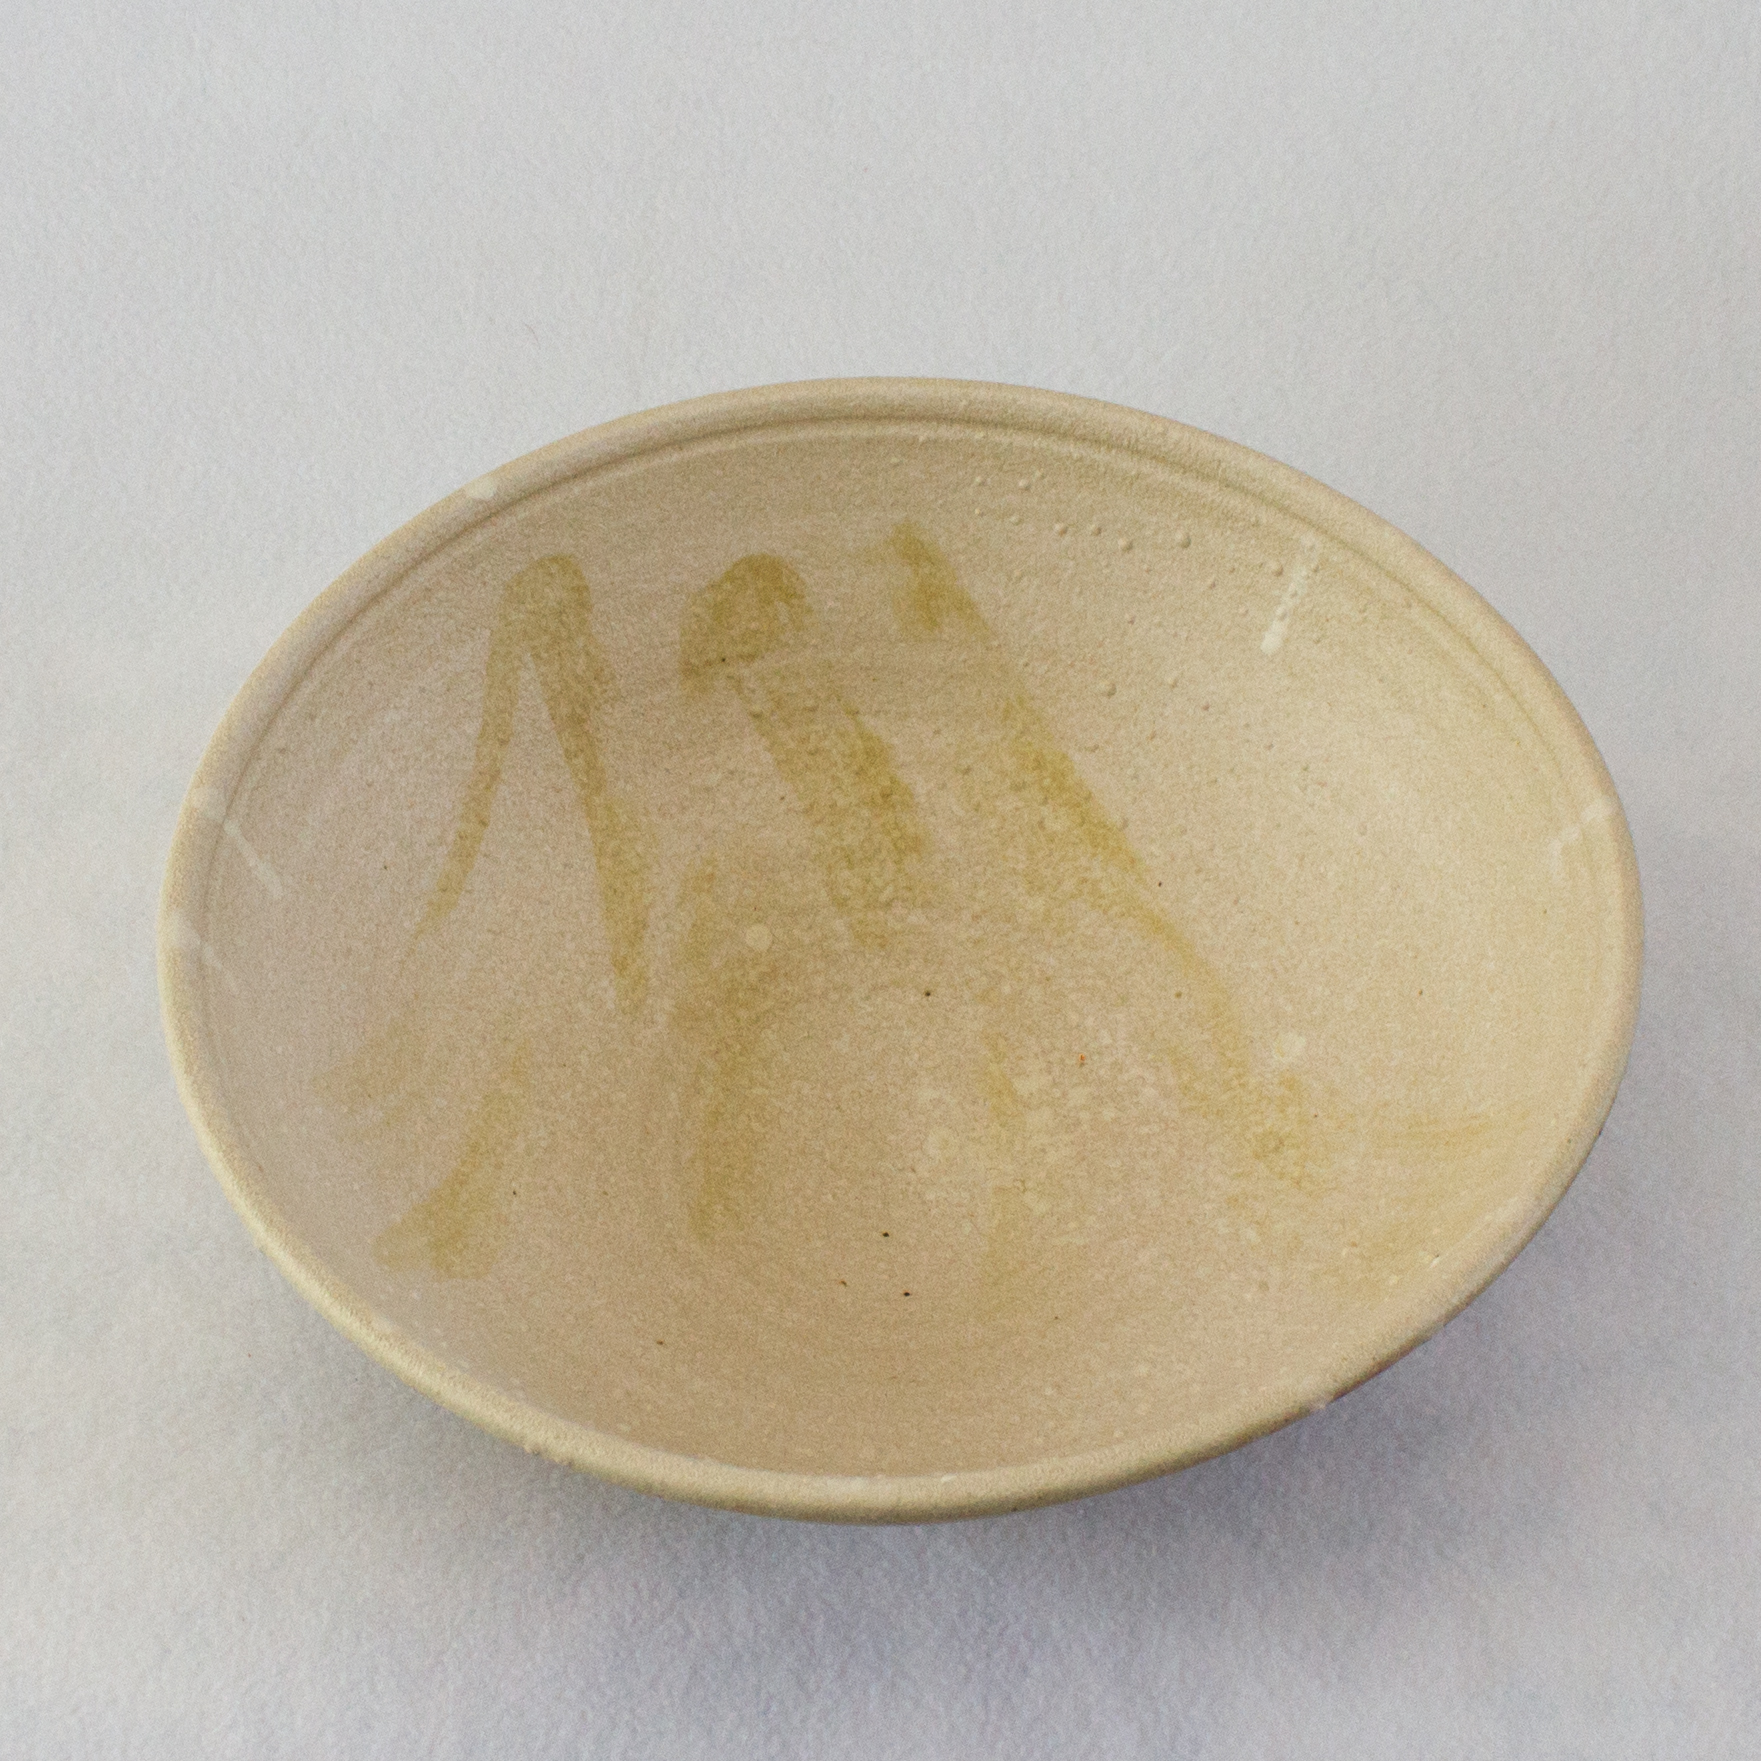 Bowl- Alabaster w Flat Gold Accent, Bubb